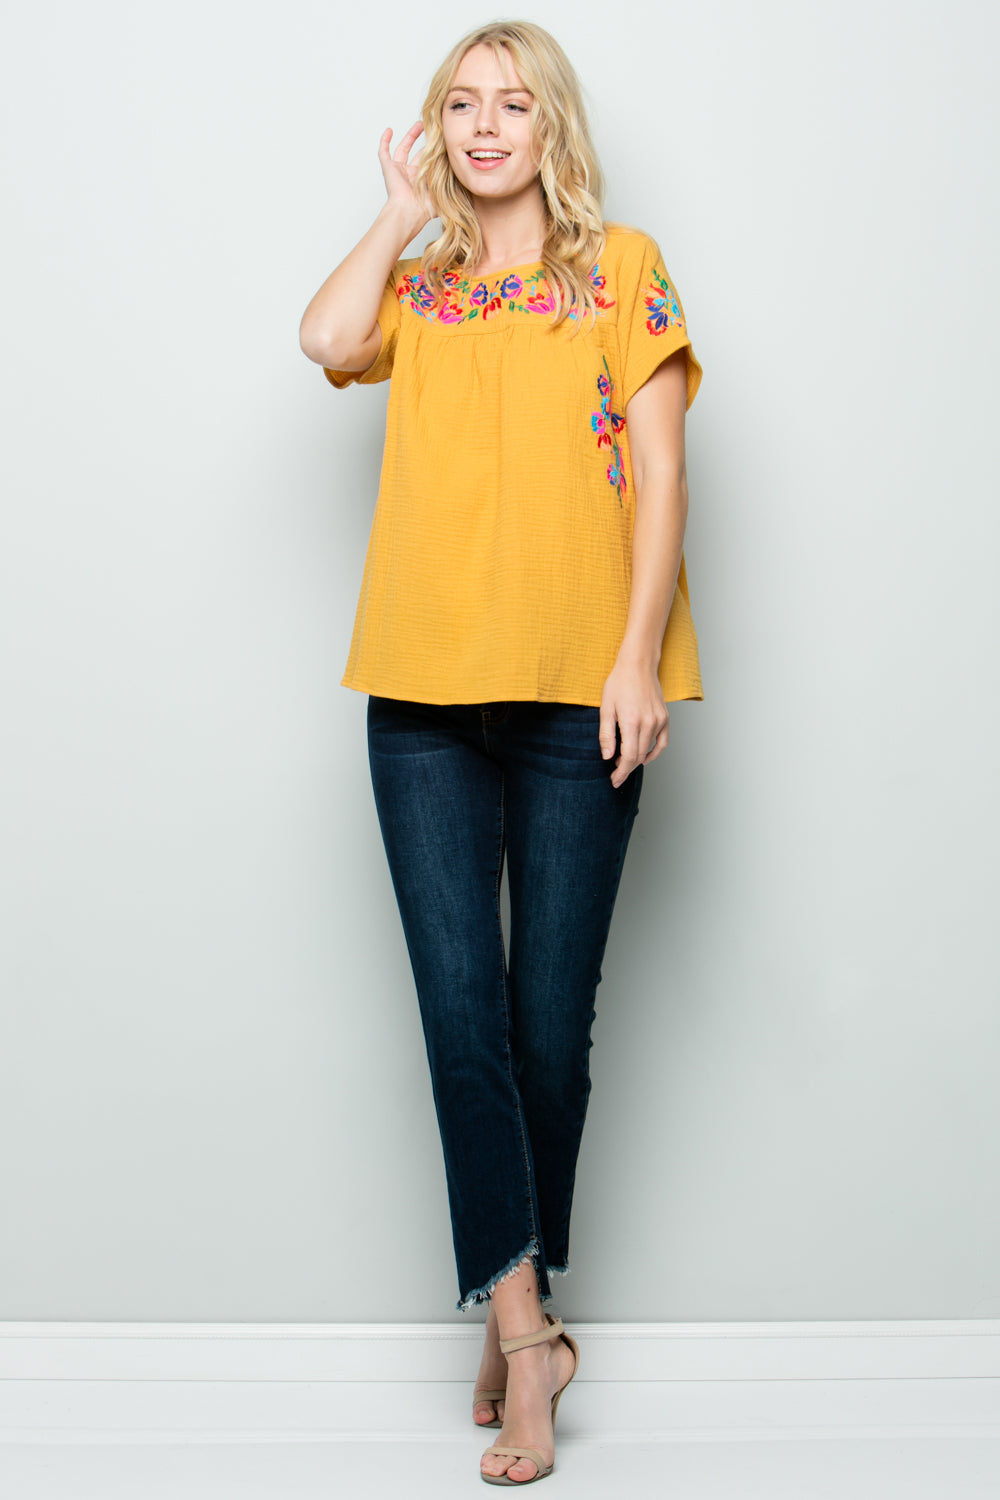 T2185  Floral Embroidery - NAVY